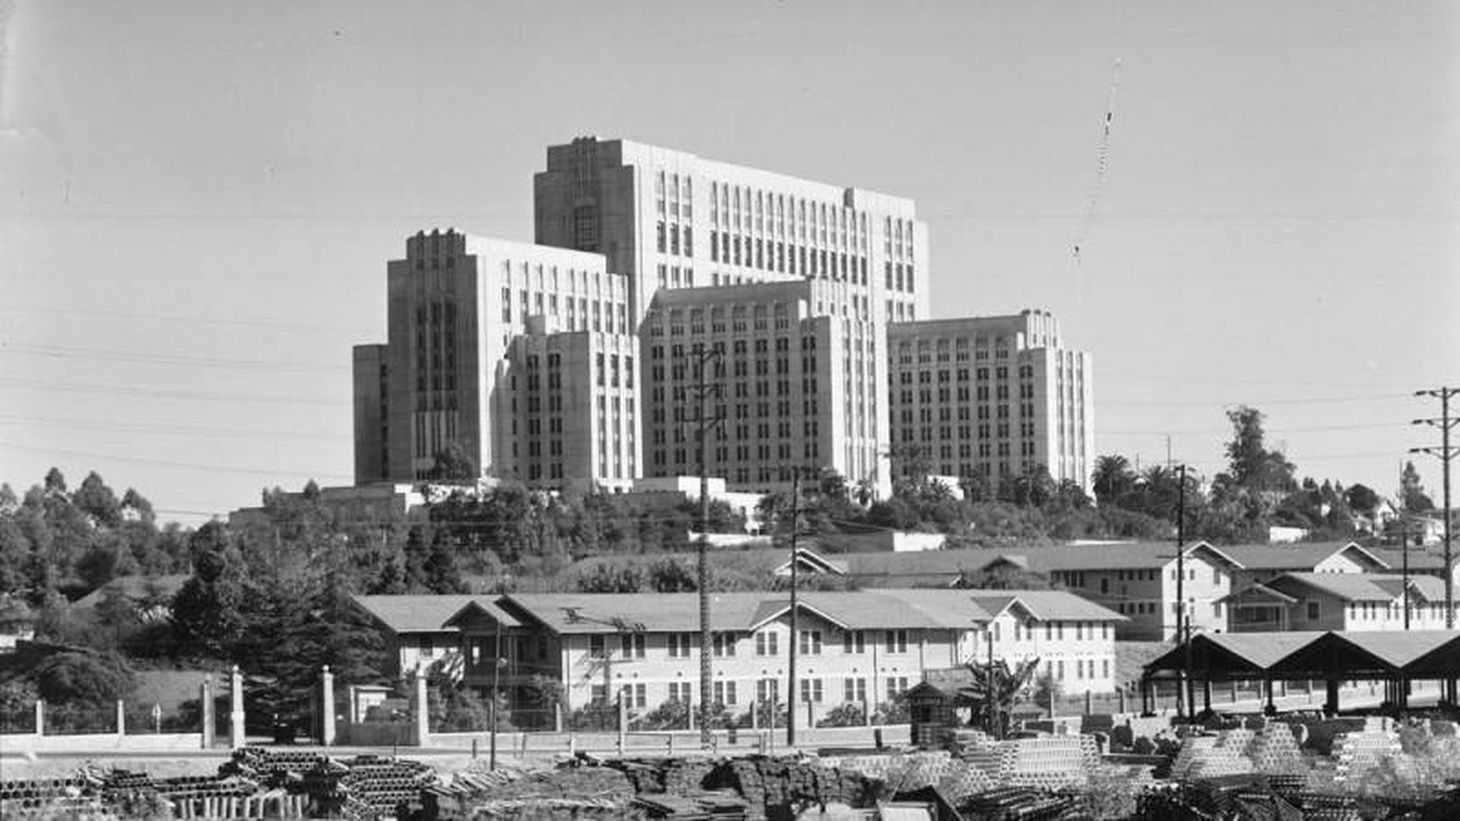 The exterior of Los Angeles County Hospital in 1937.